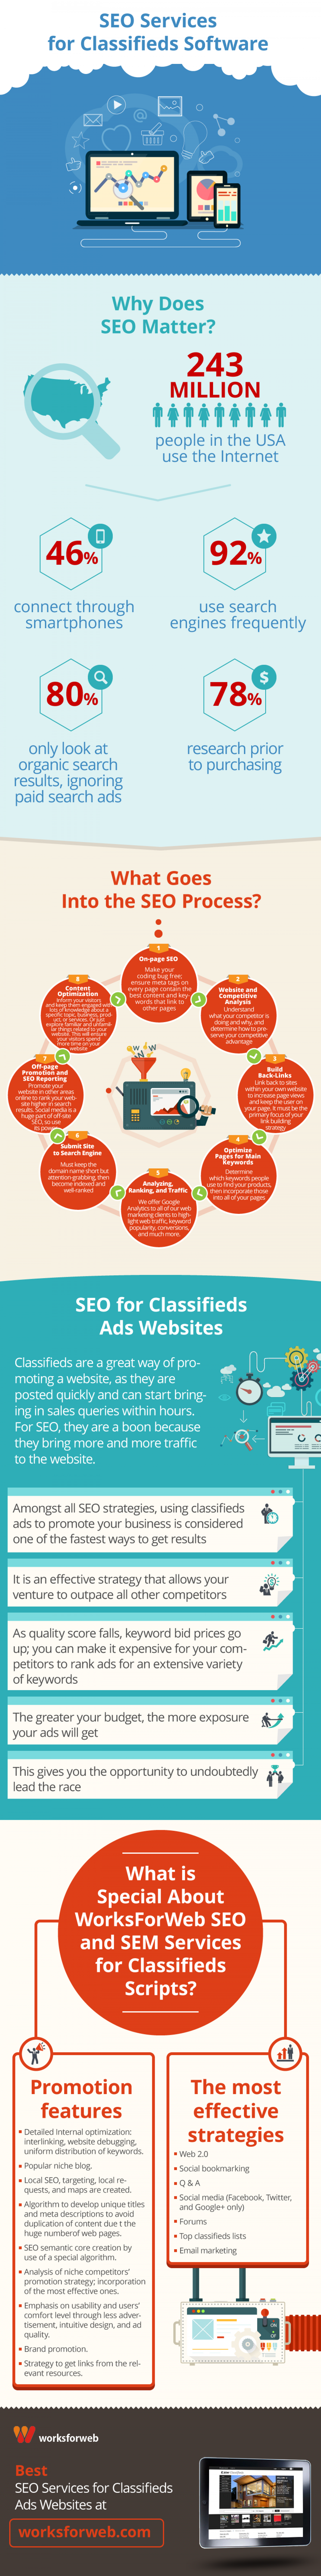 SEO Services for Classifieds Software Infographic